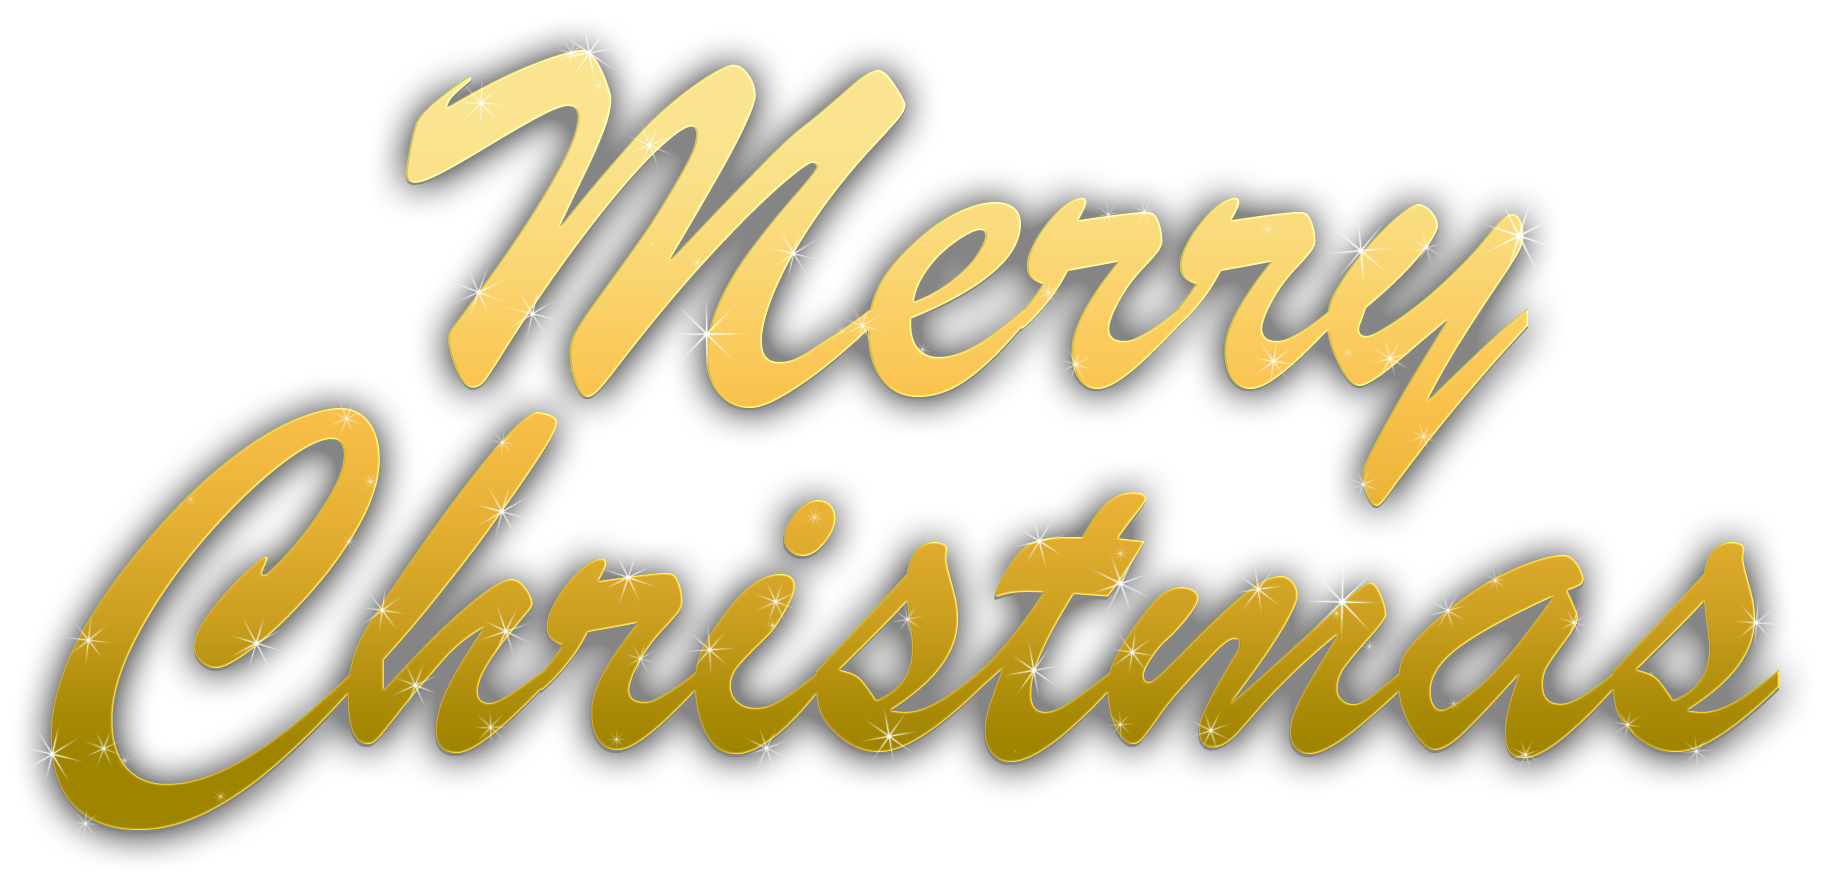 Merry Christmas Text PNG - 16090